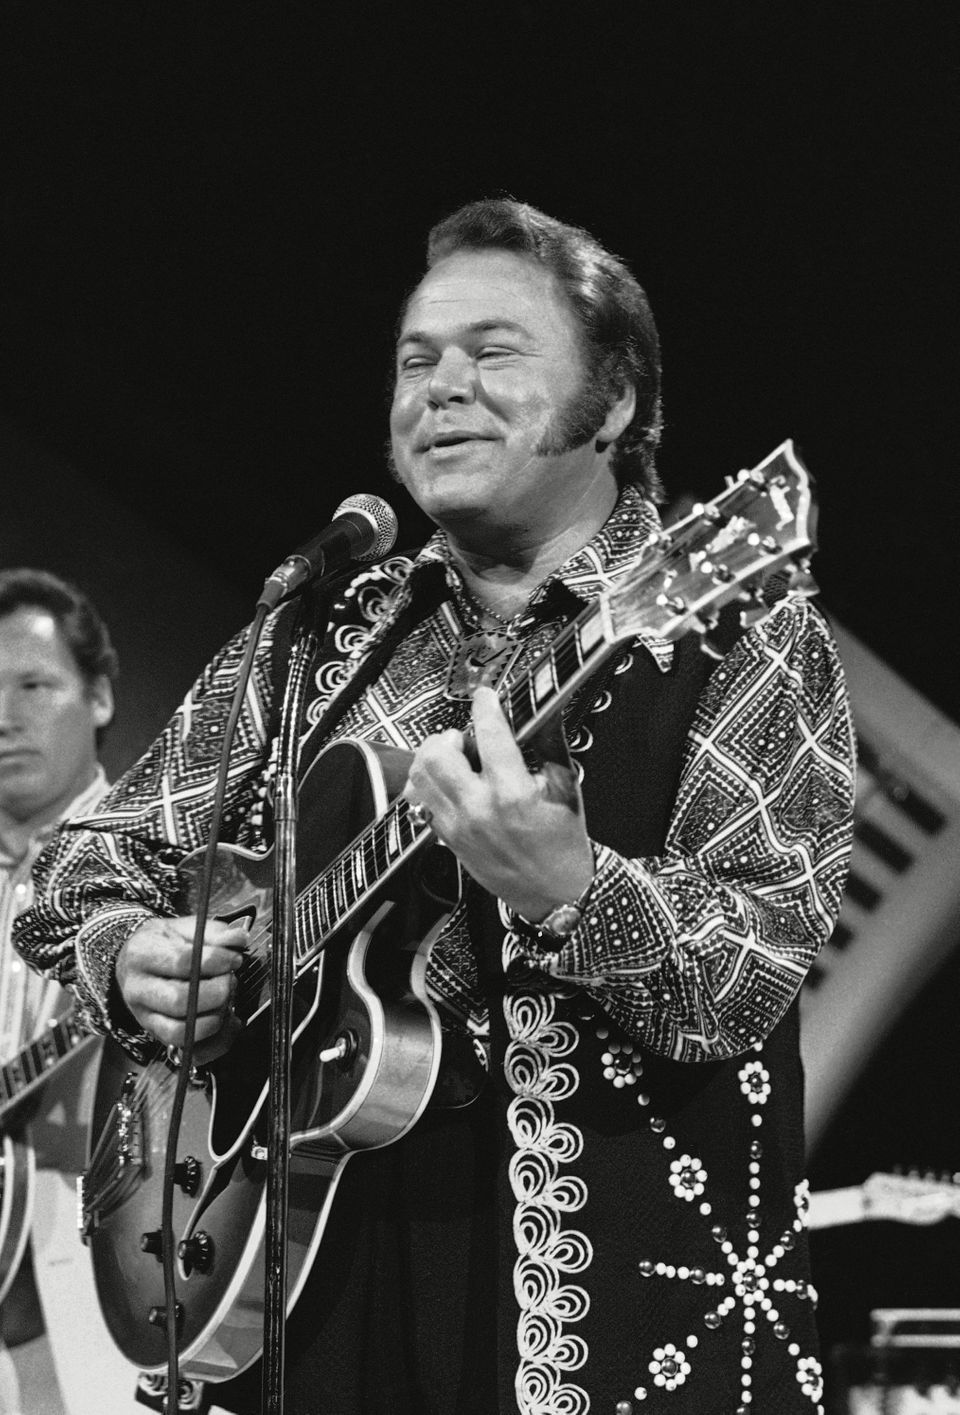 Country music singer Roy Clark, who co-hosted the long-running variety show <i>Hee Haw</i> with Buck Owens, died Nov. 15